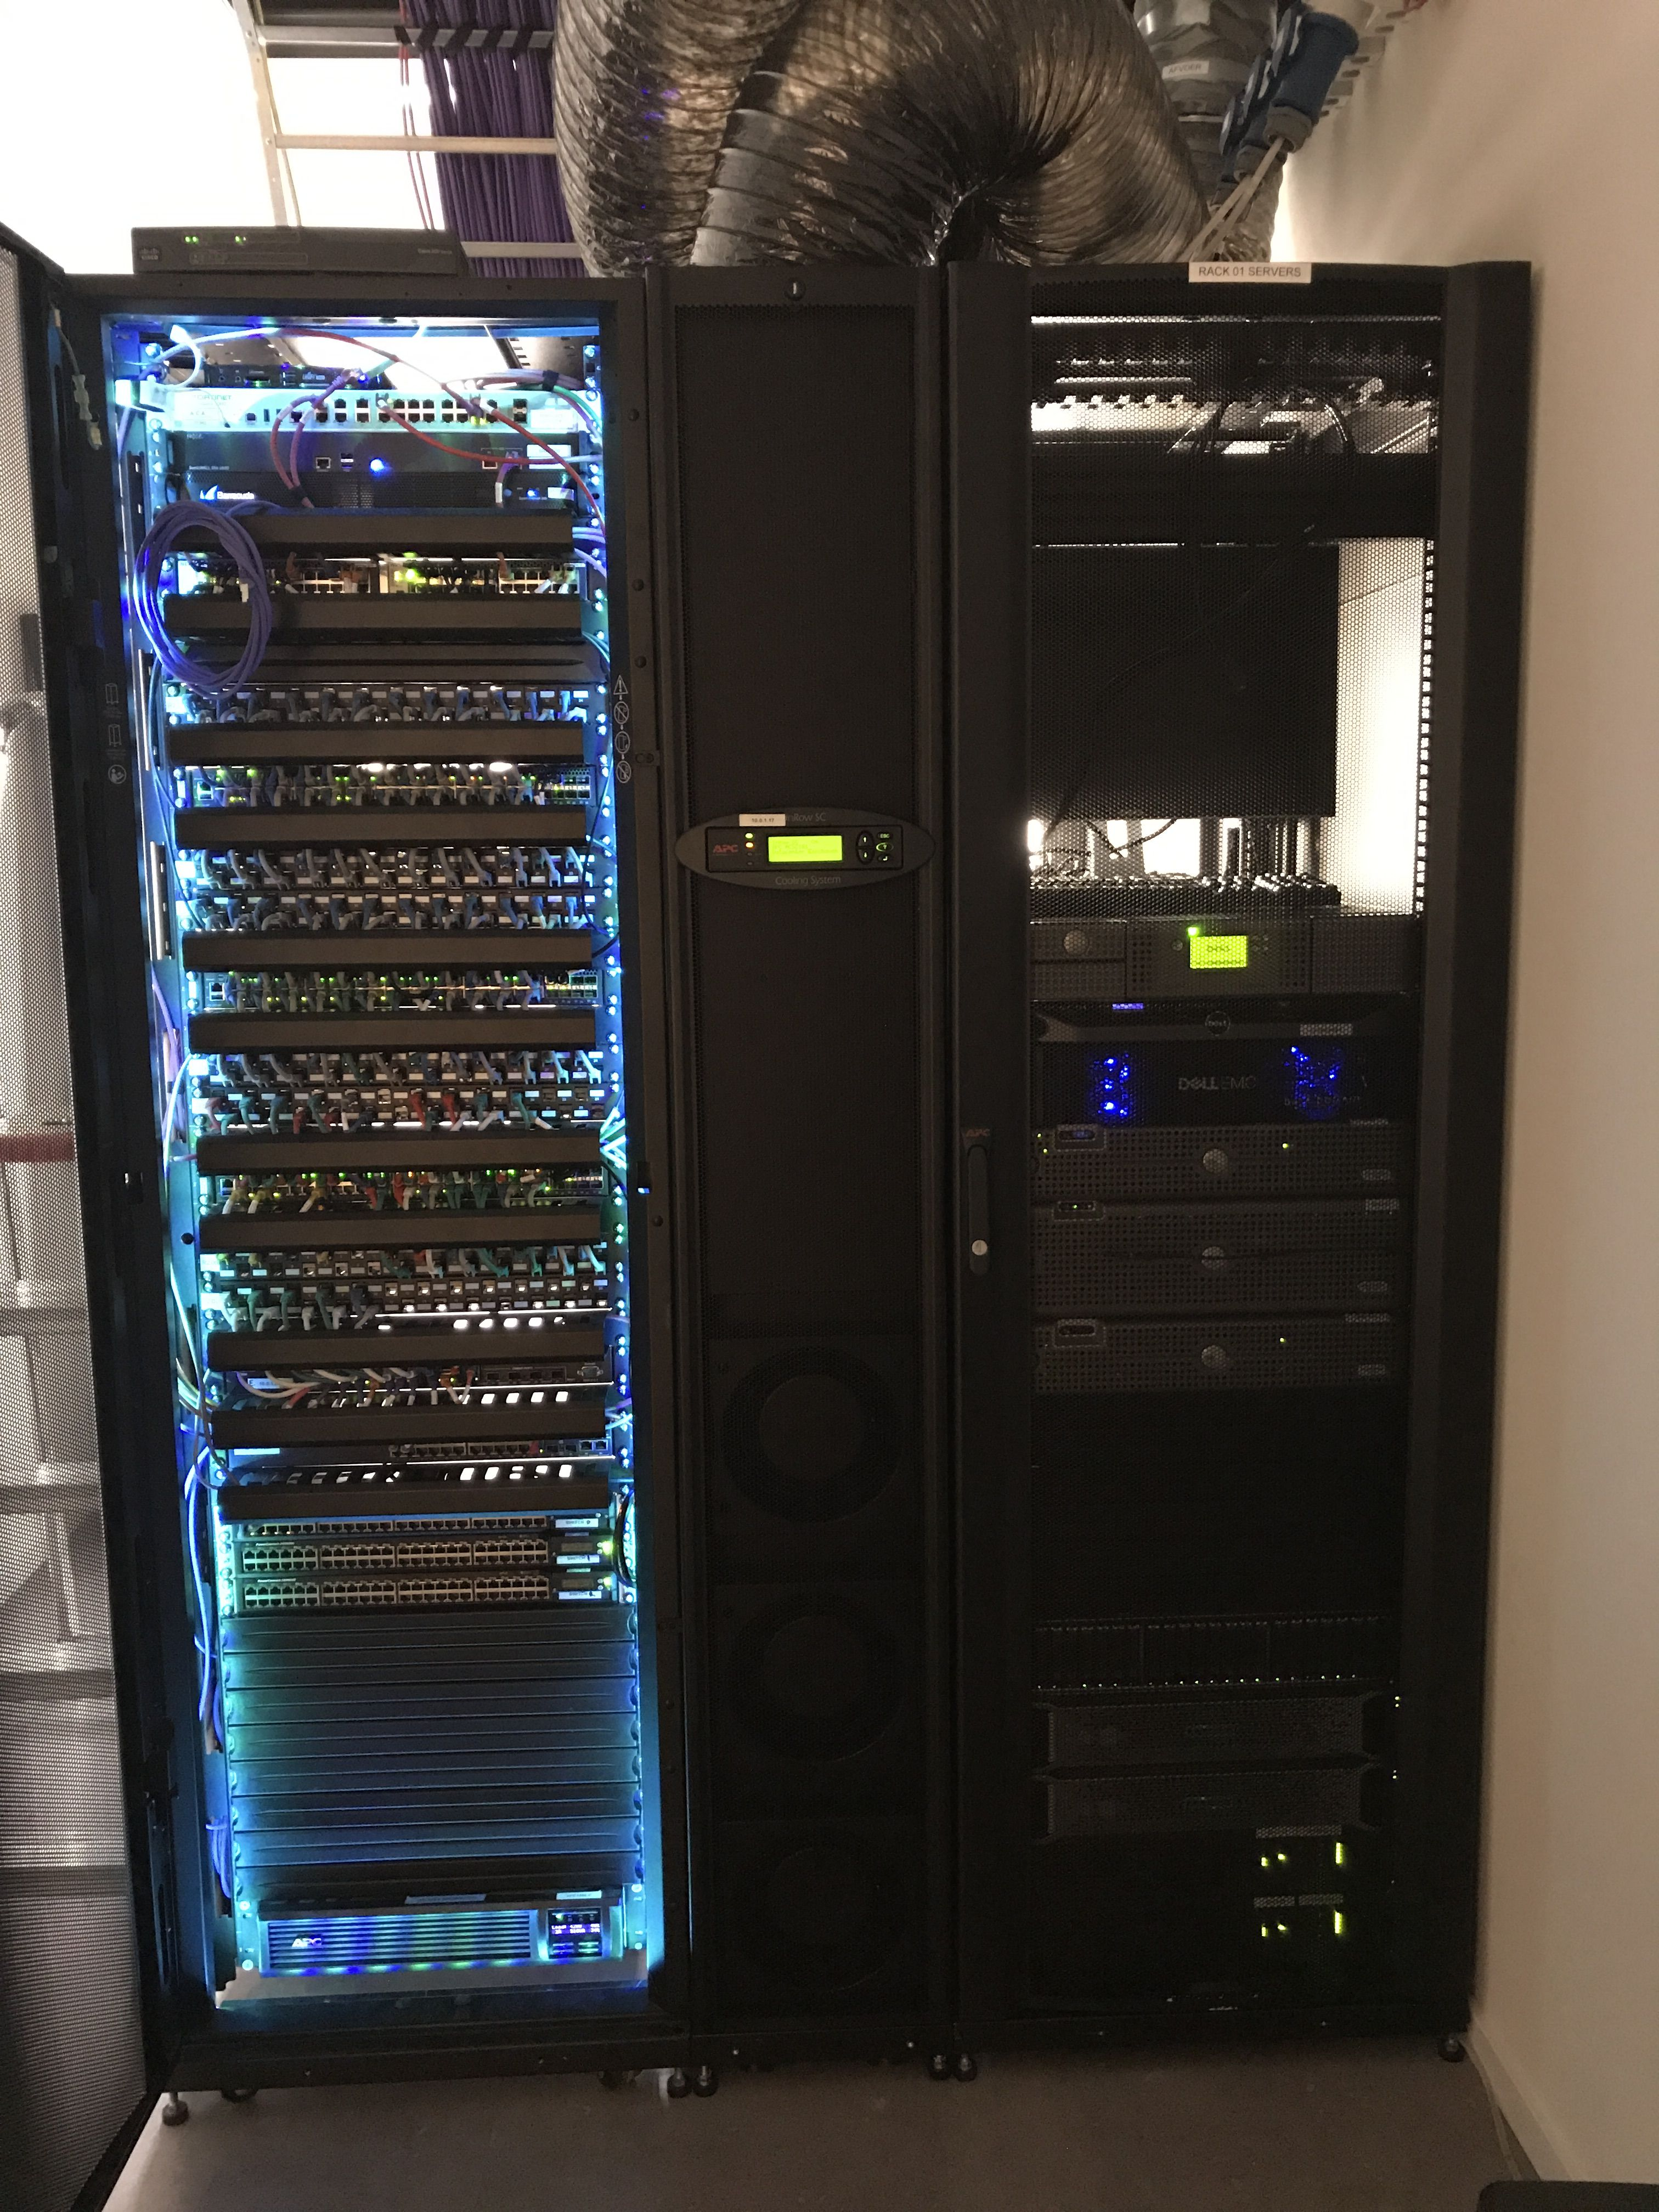 Almost Finished With My New Serverroom Ordered Some Led Lights